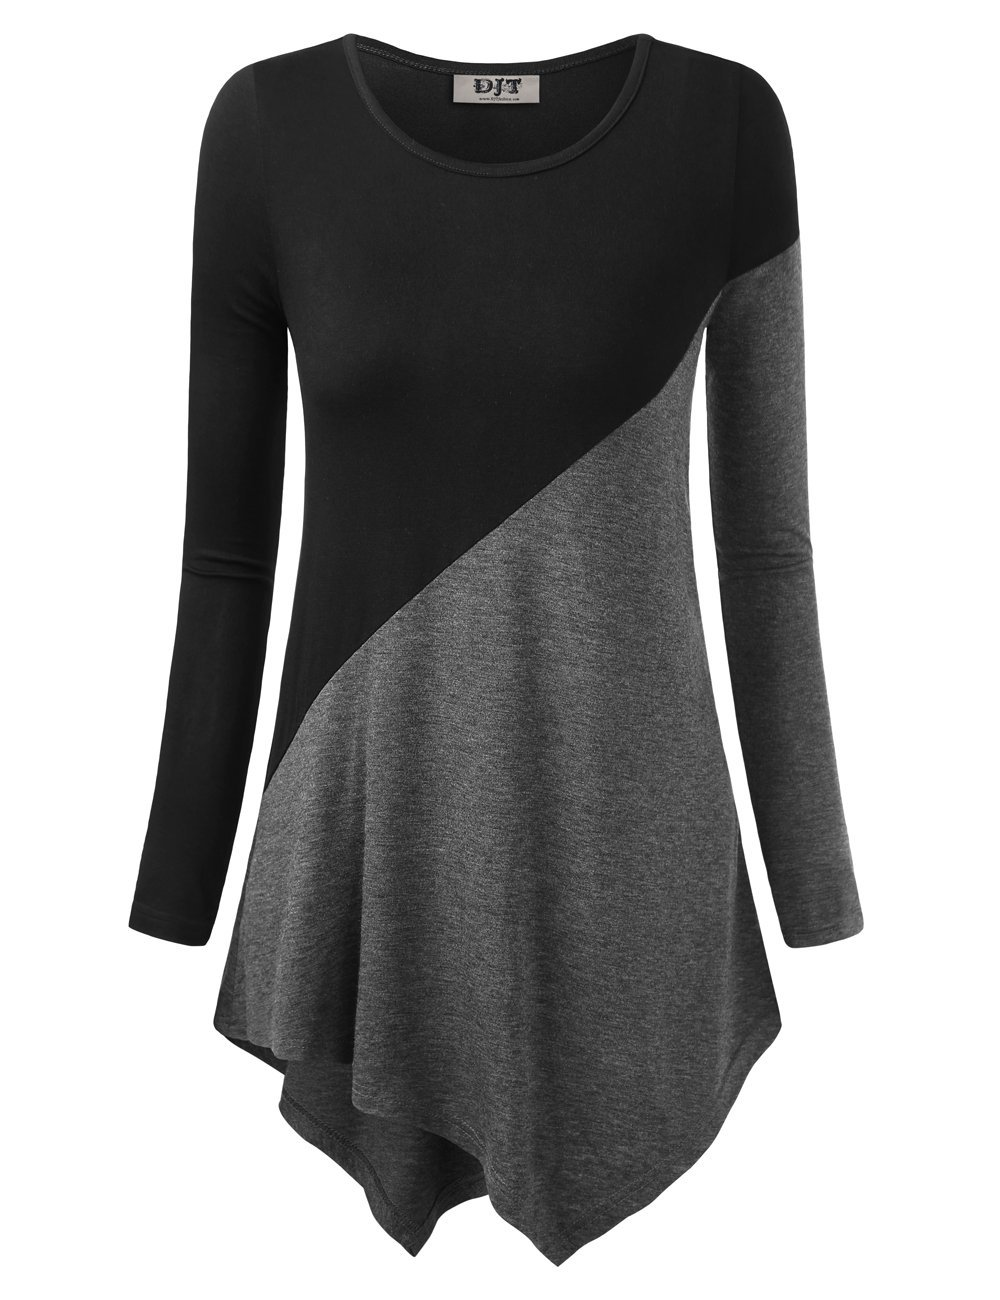 DJT Women's Color Block Blouse Long Sleeve Casual Tee Shirts Tunic Tops X-Large Black+Dary Grey